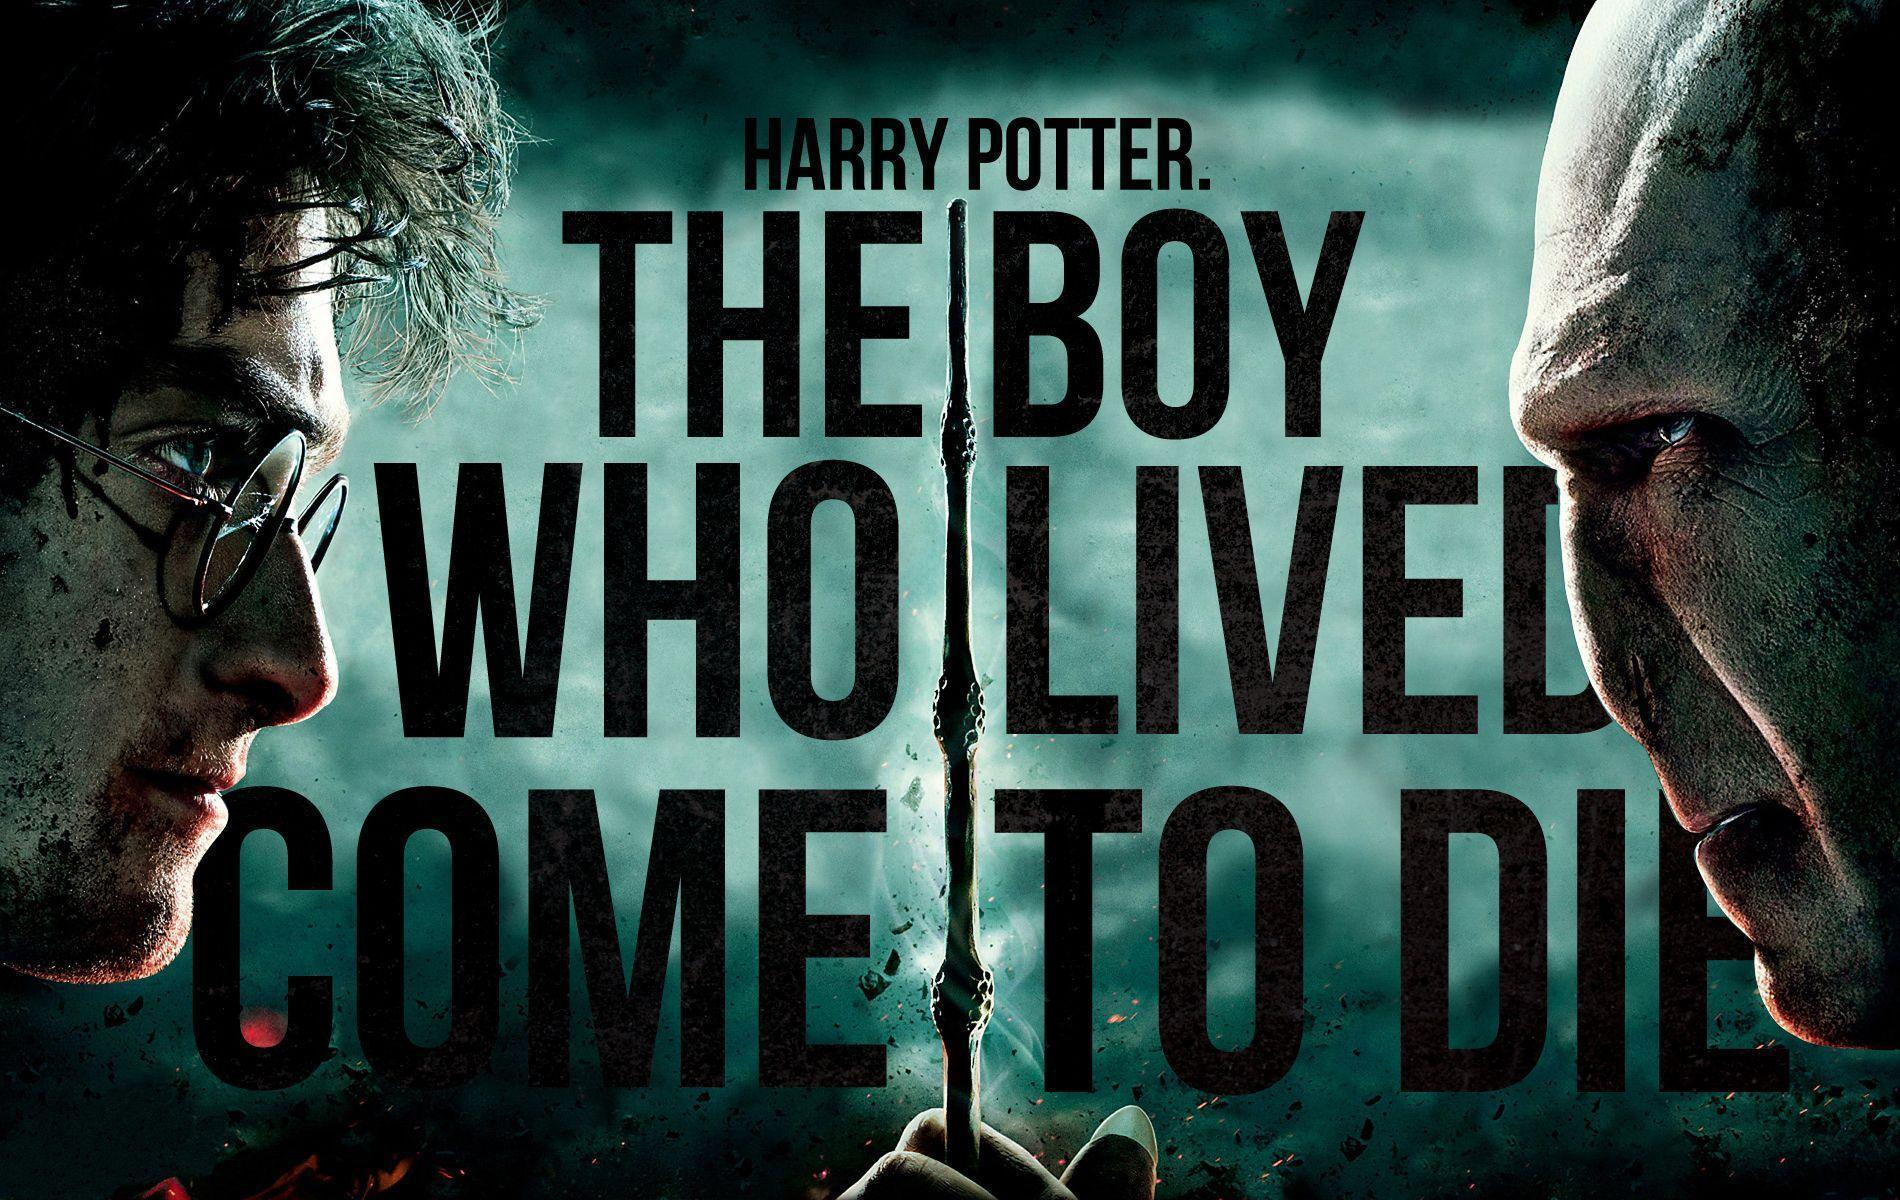 Harry Potter Quotes Wallpapers Wallpaper Cave